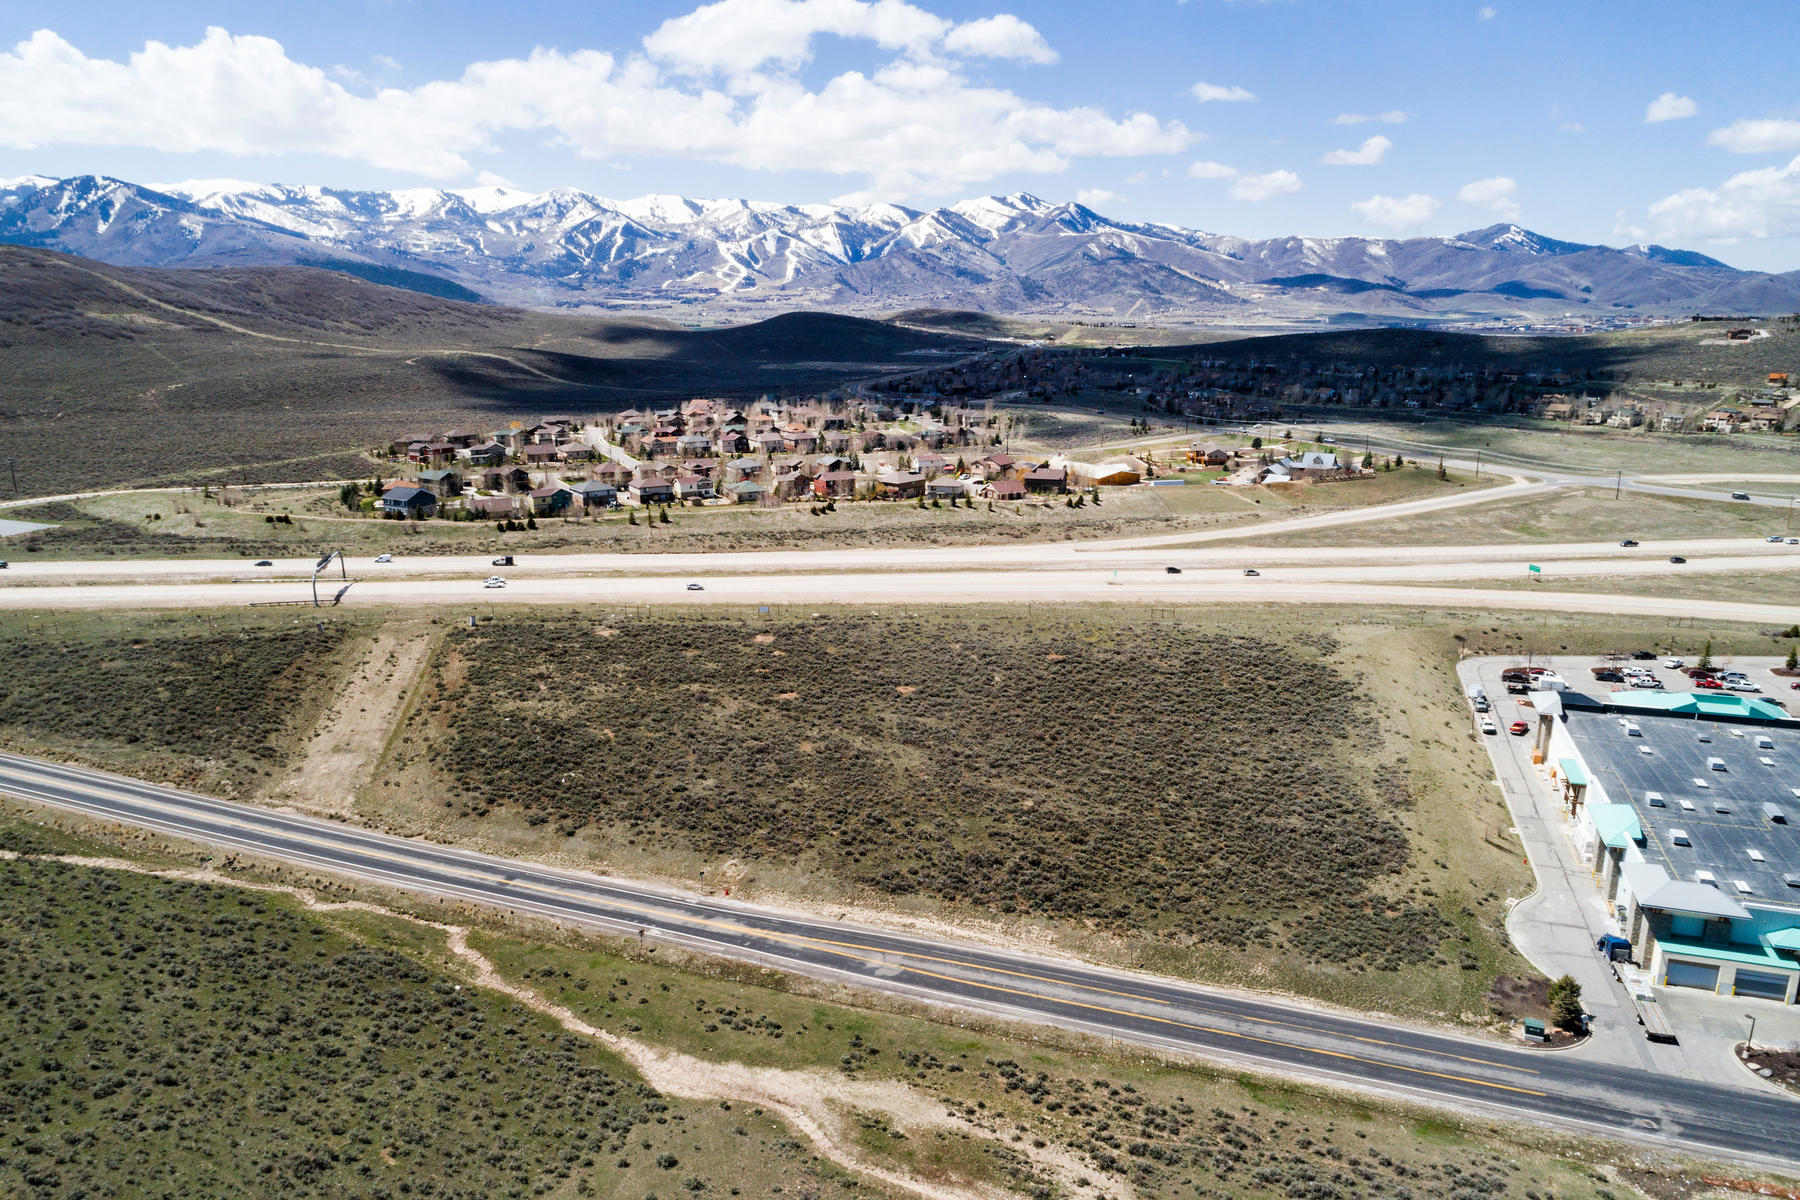 Land for Sale at Prime Vacant Land for Commercial Opportunity 1825 E Frontage Rd Park City, Utah 84098 United States